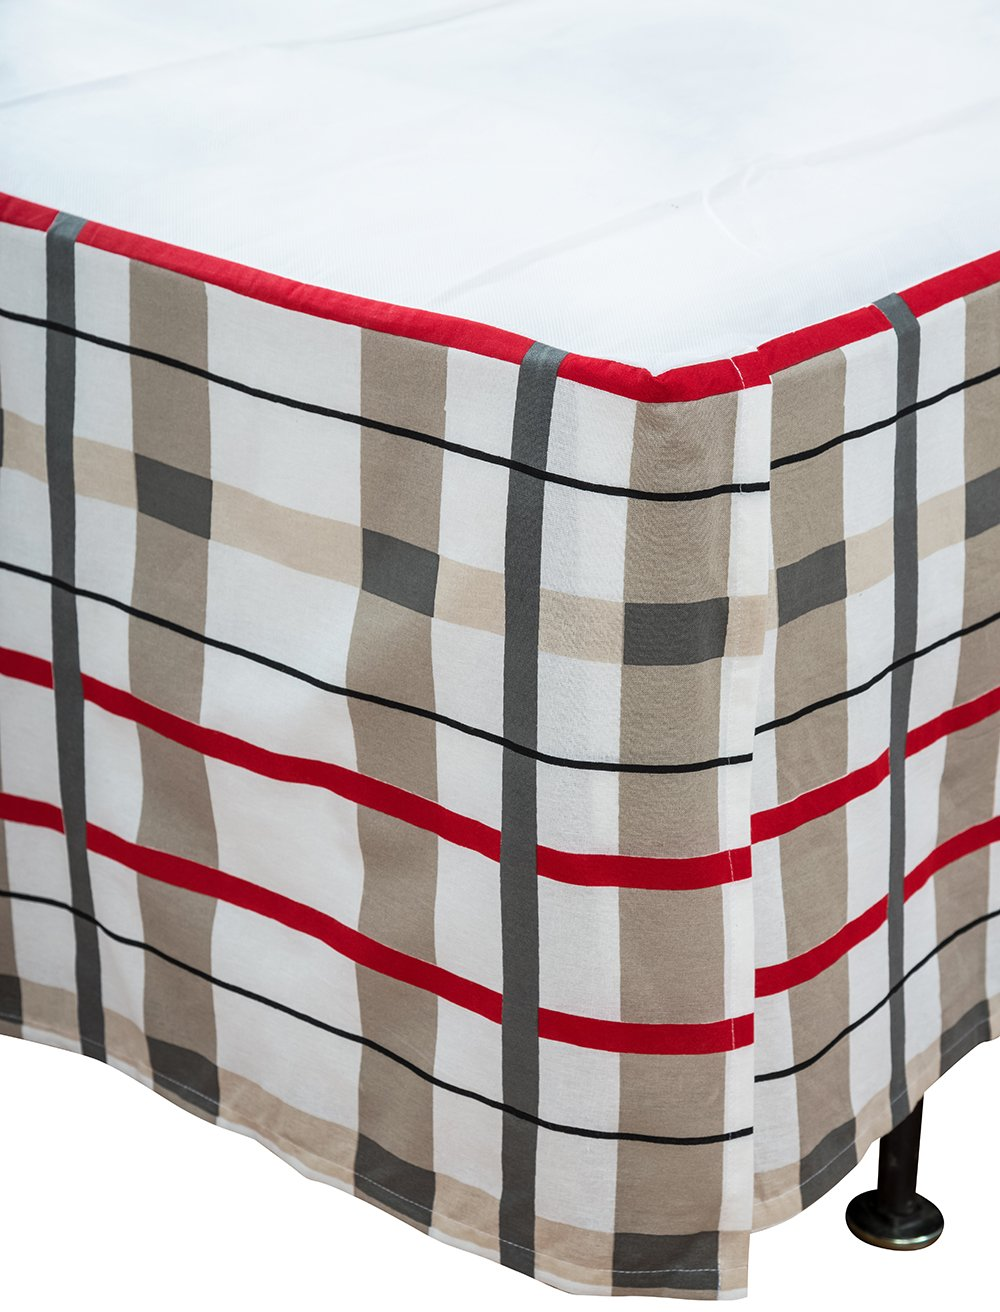 Rizzy Home 39'' x 76'' Bed Skirt BS1489 White Plaid 100% Cotton